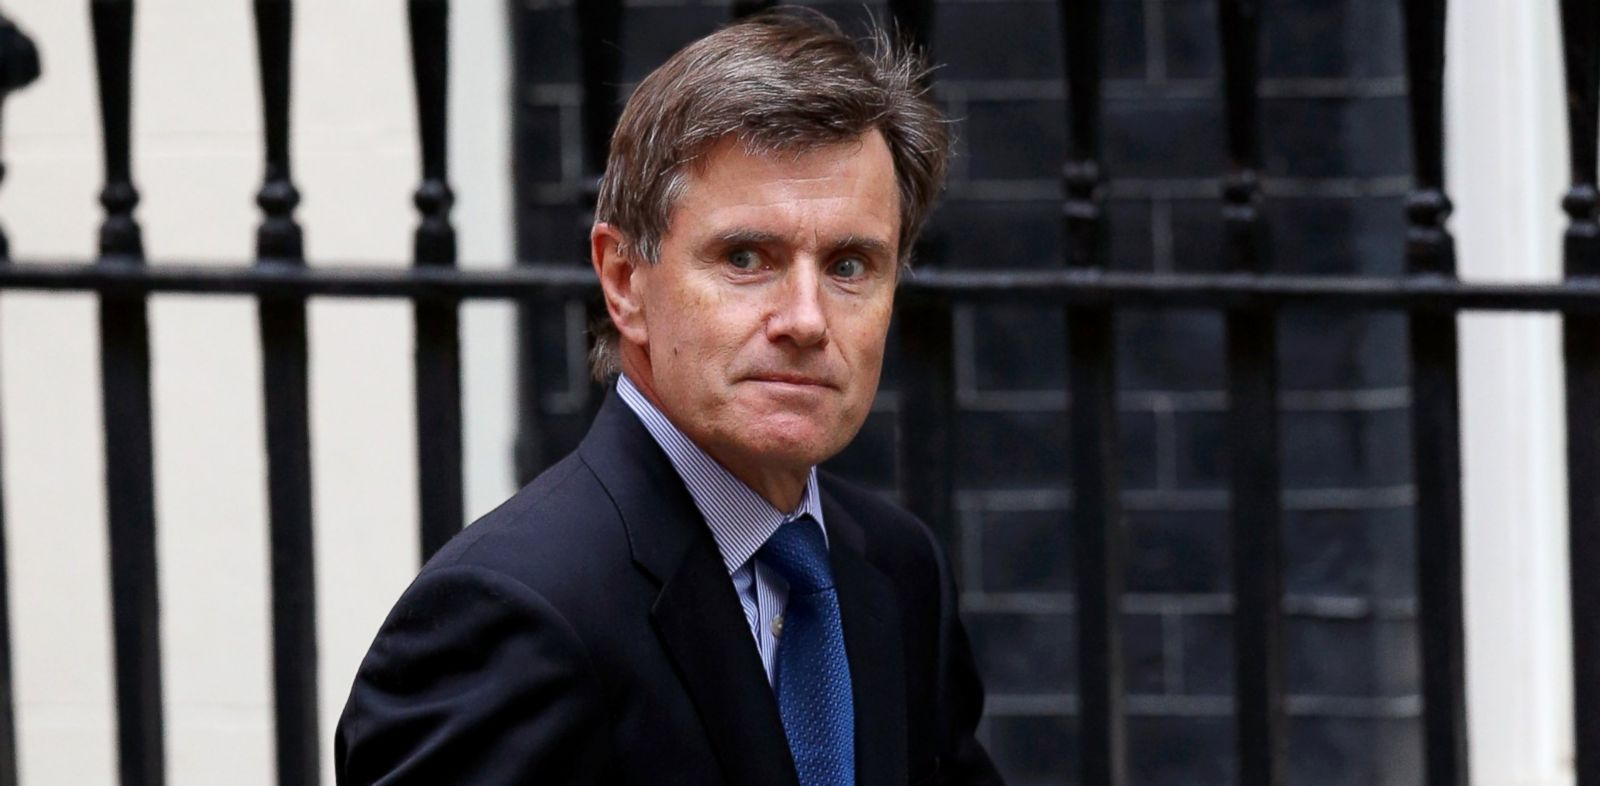 PHOTO: The head of MI6, Sir John Sawers arrives in Downing Street, Aug. 28, 2013, in London.